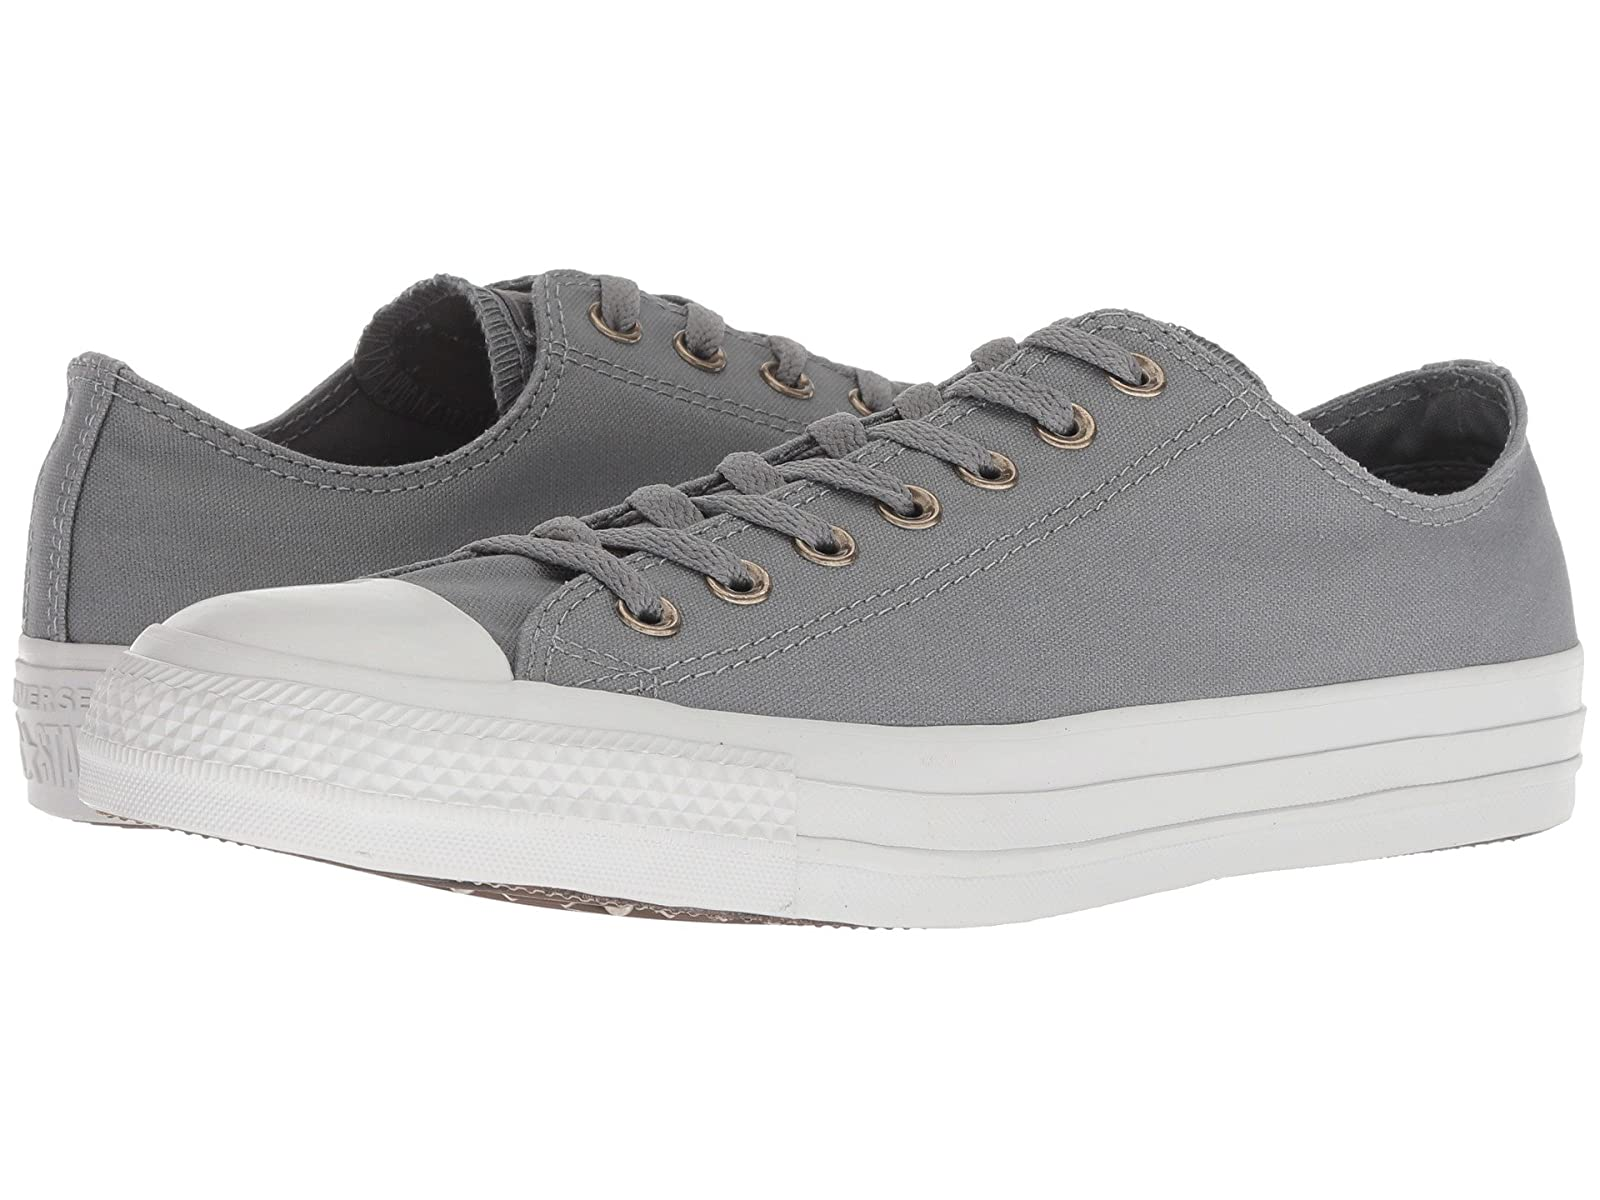 Converse Chuck Taylor All Star - Botanical Neutrals OxAtmospheric grades have affordable shoes